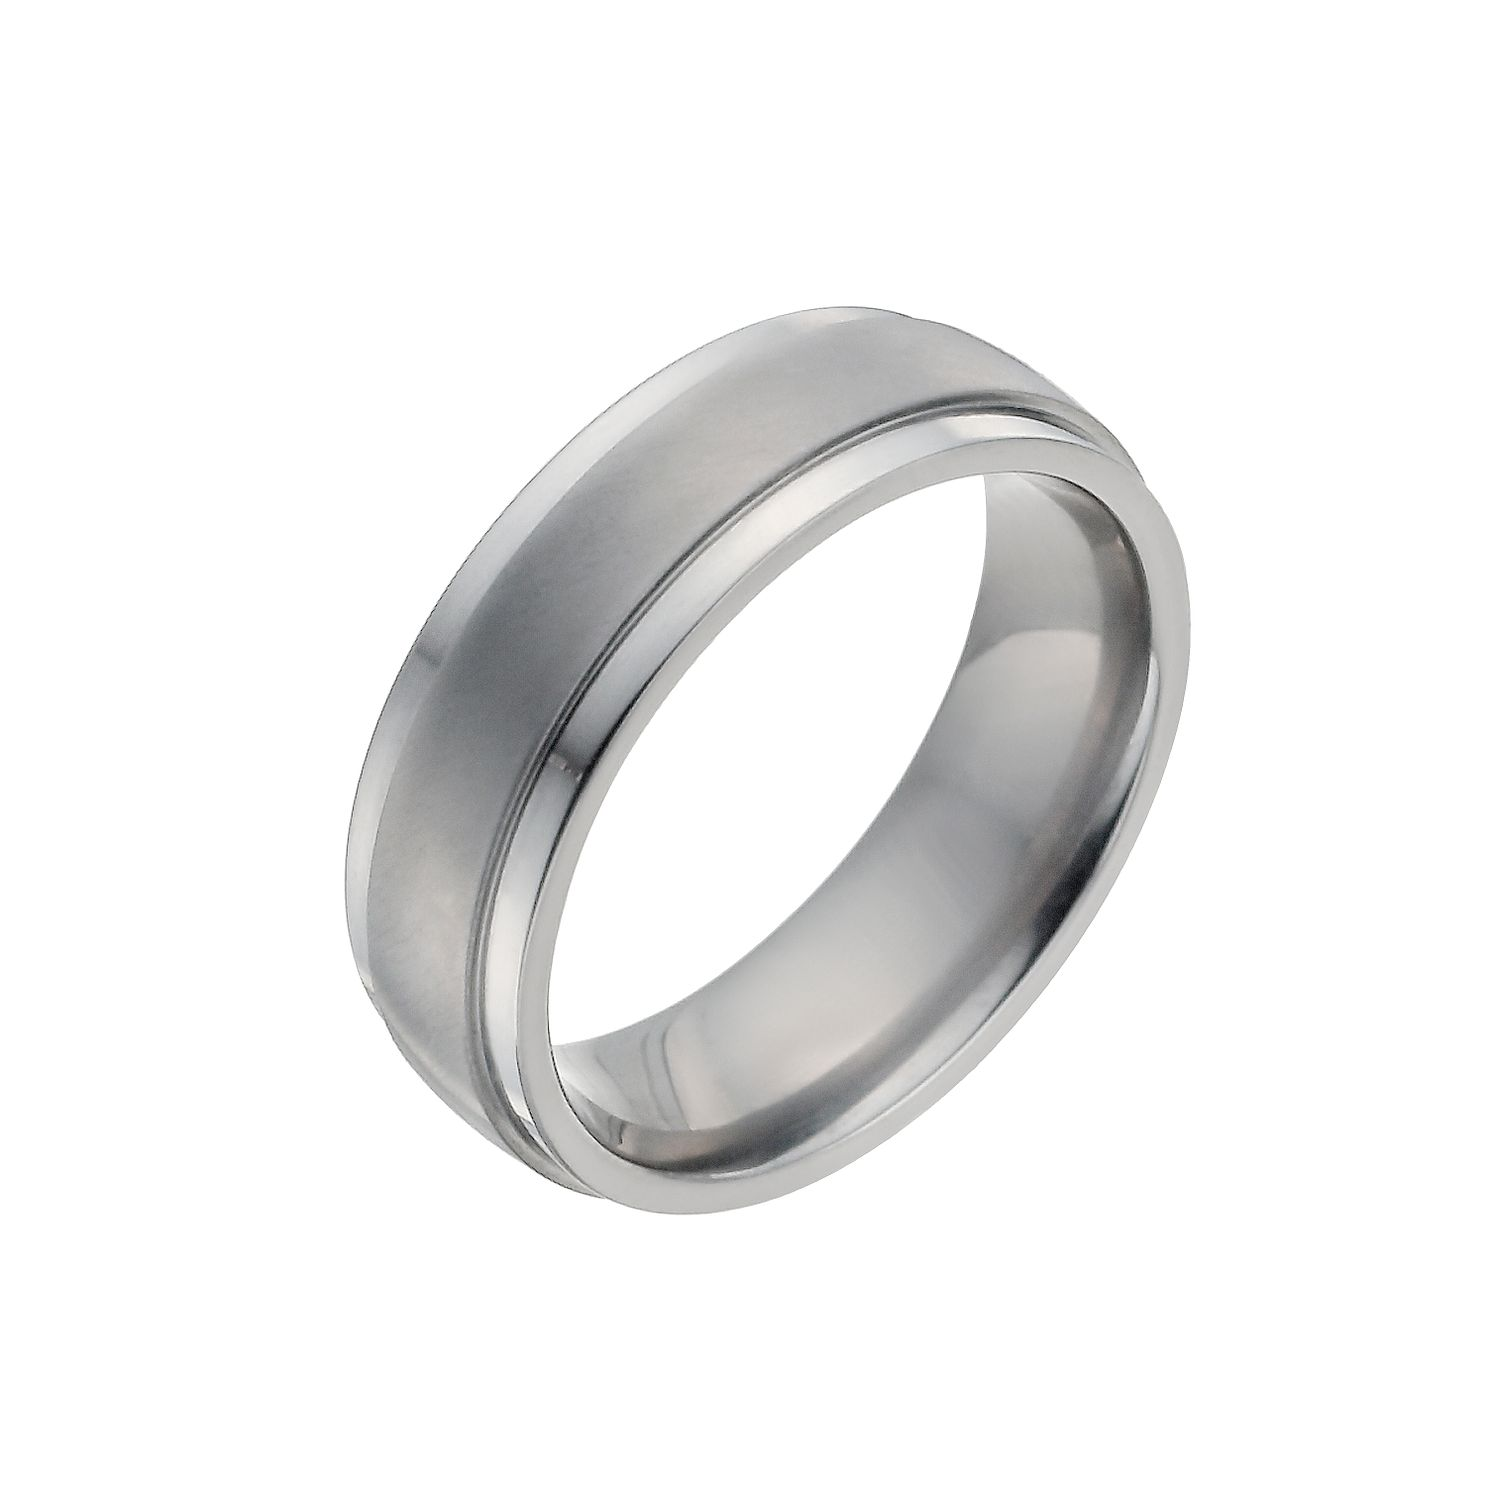 silver amp lord elegant titanium rings platinum wedding the of gold